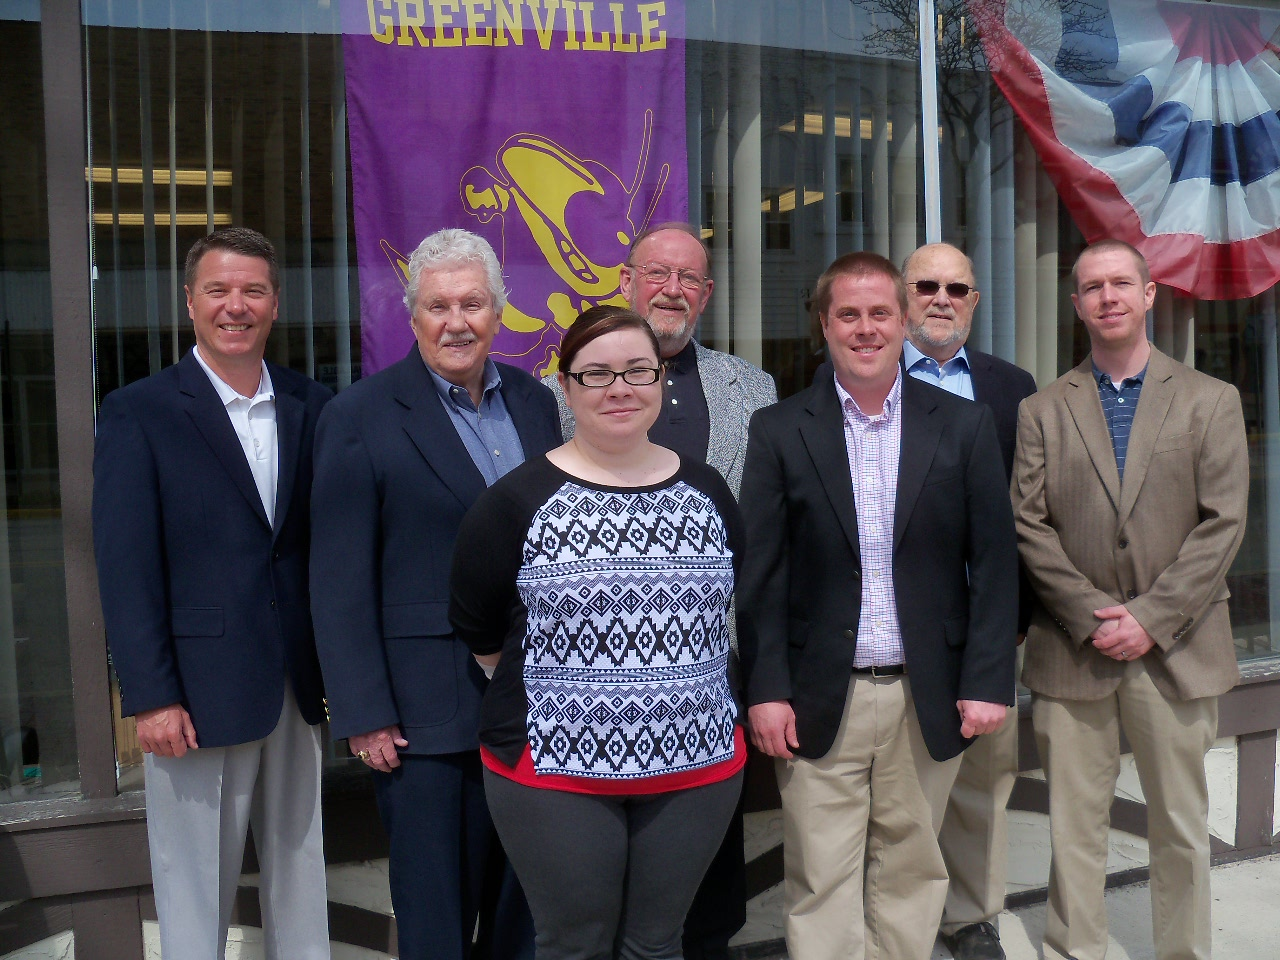 Kemp Insurance Sure is (from left to right): Alex Kemp, Chuck McDonald, Samantha Tett, Bill Kemp, Steve Kemp, Duane Chambers, and Charley Kemp